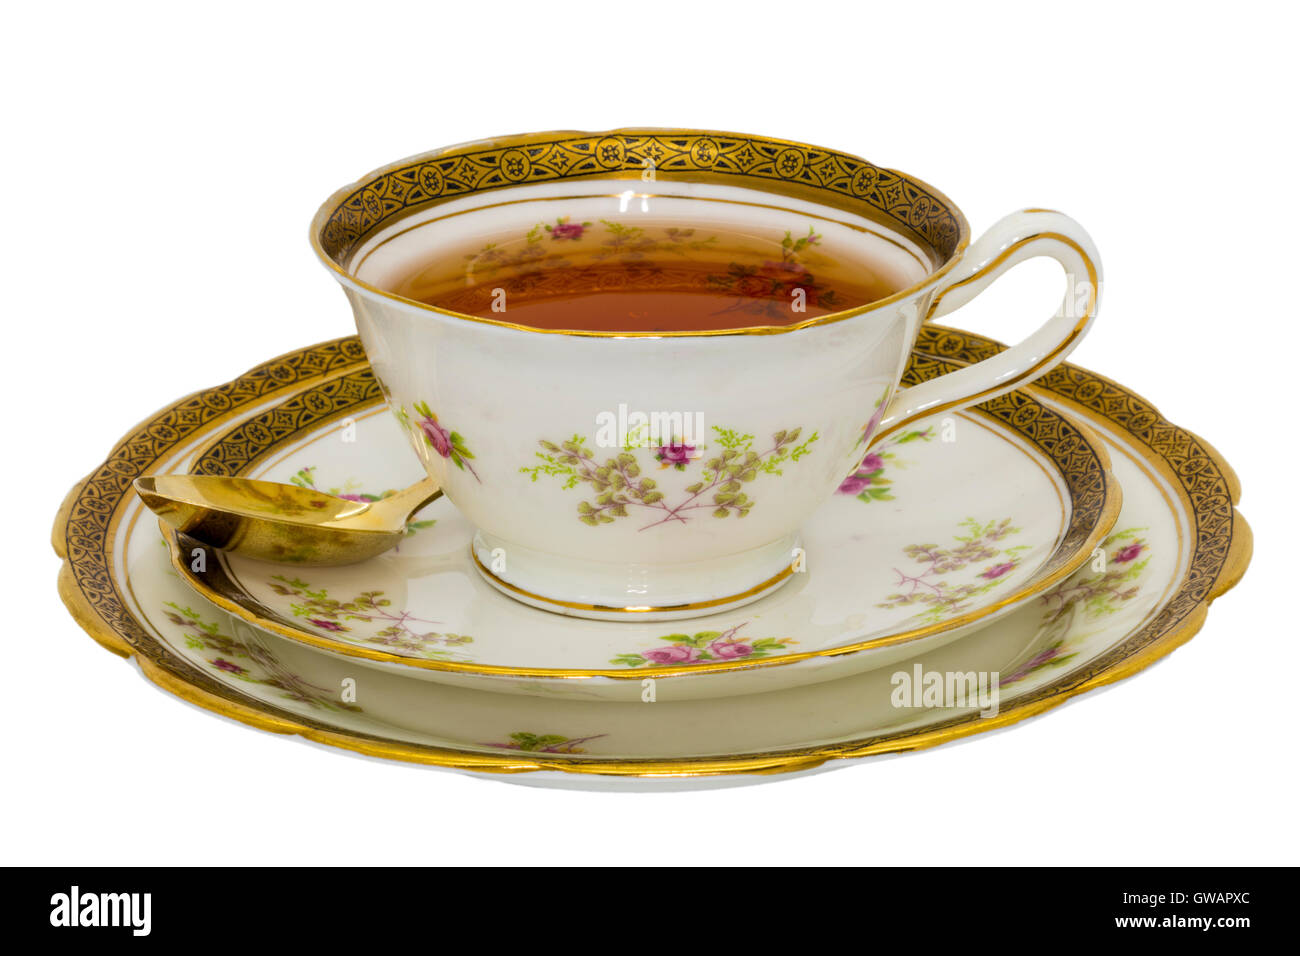 Tea in an antique fine china cup. - Stock Image